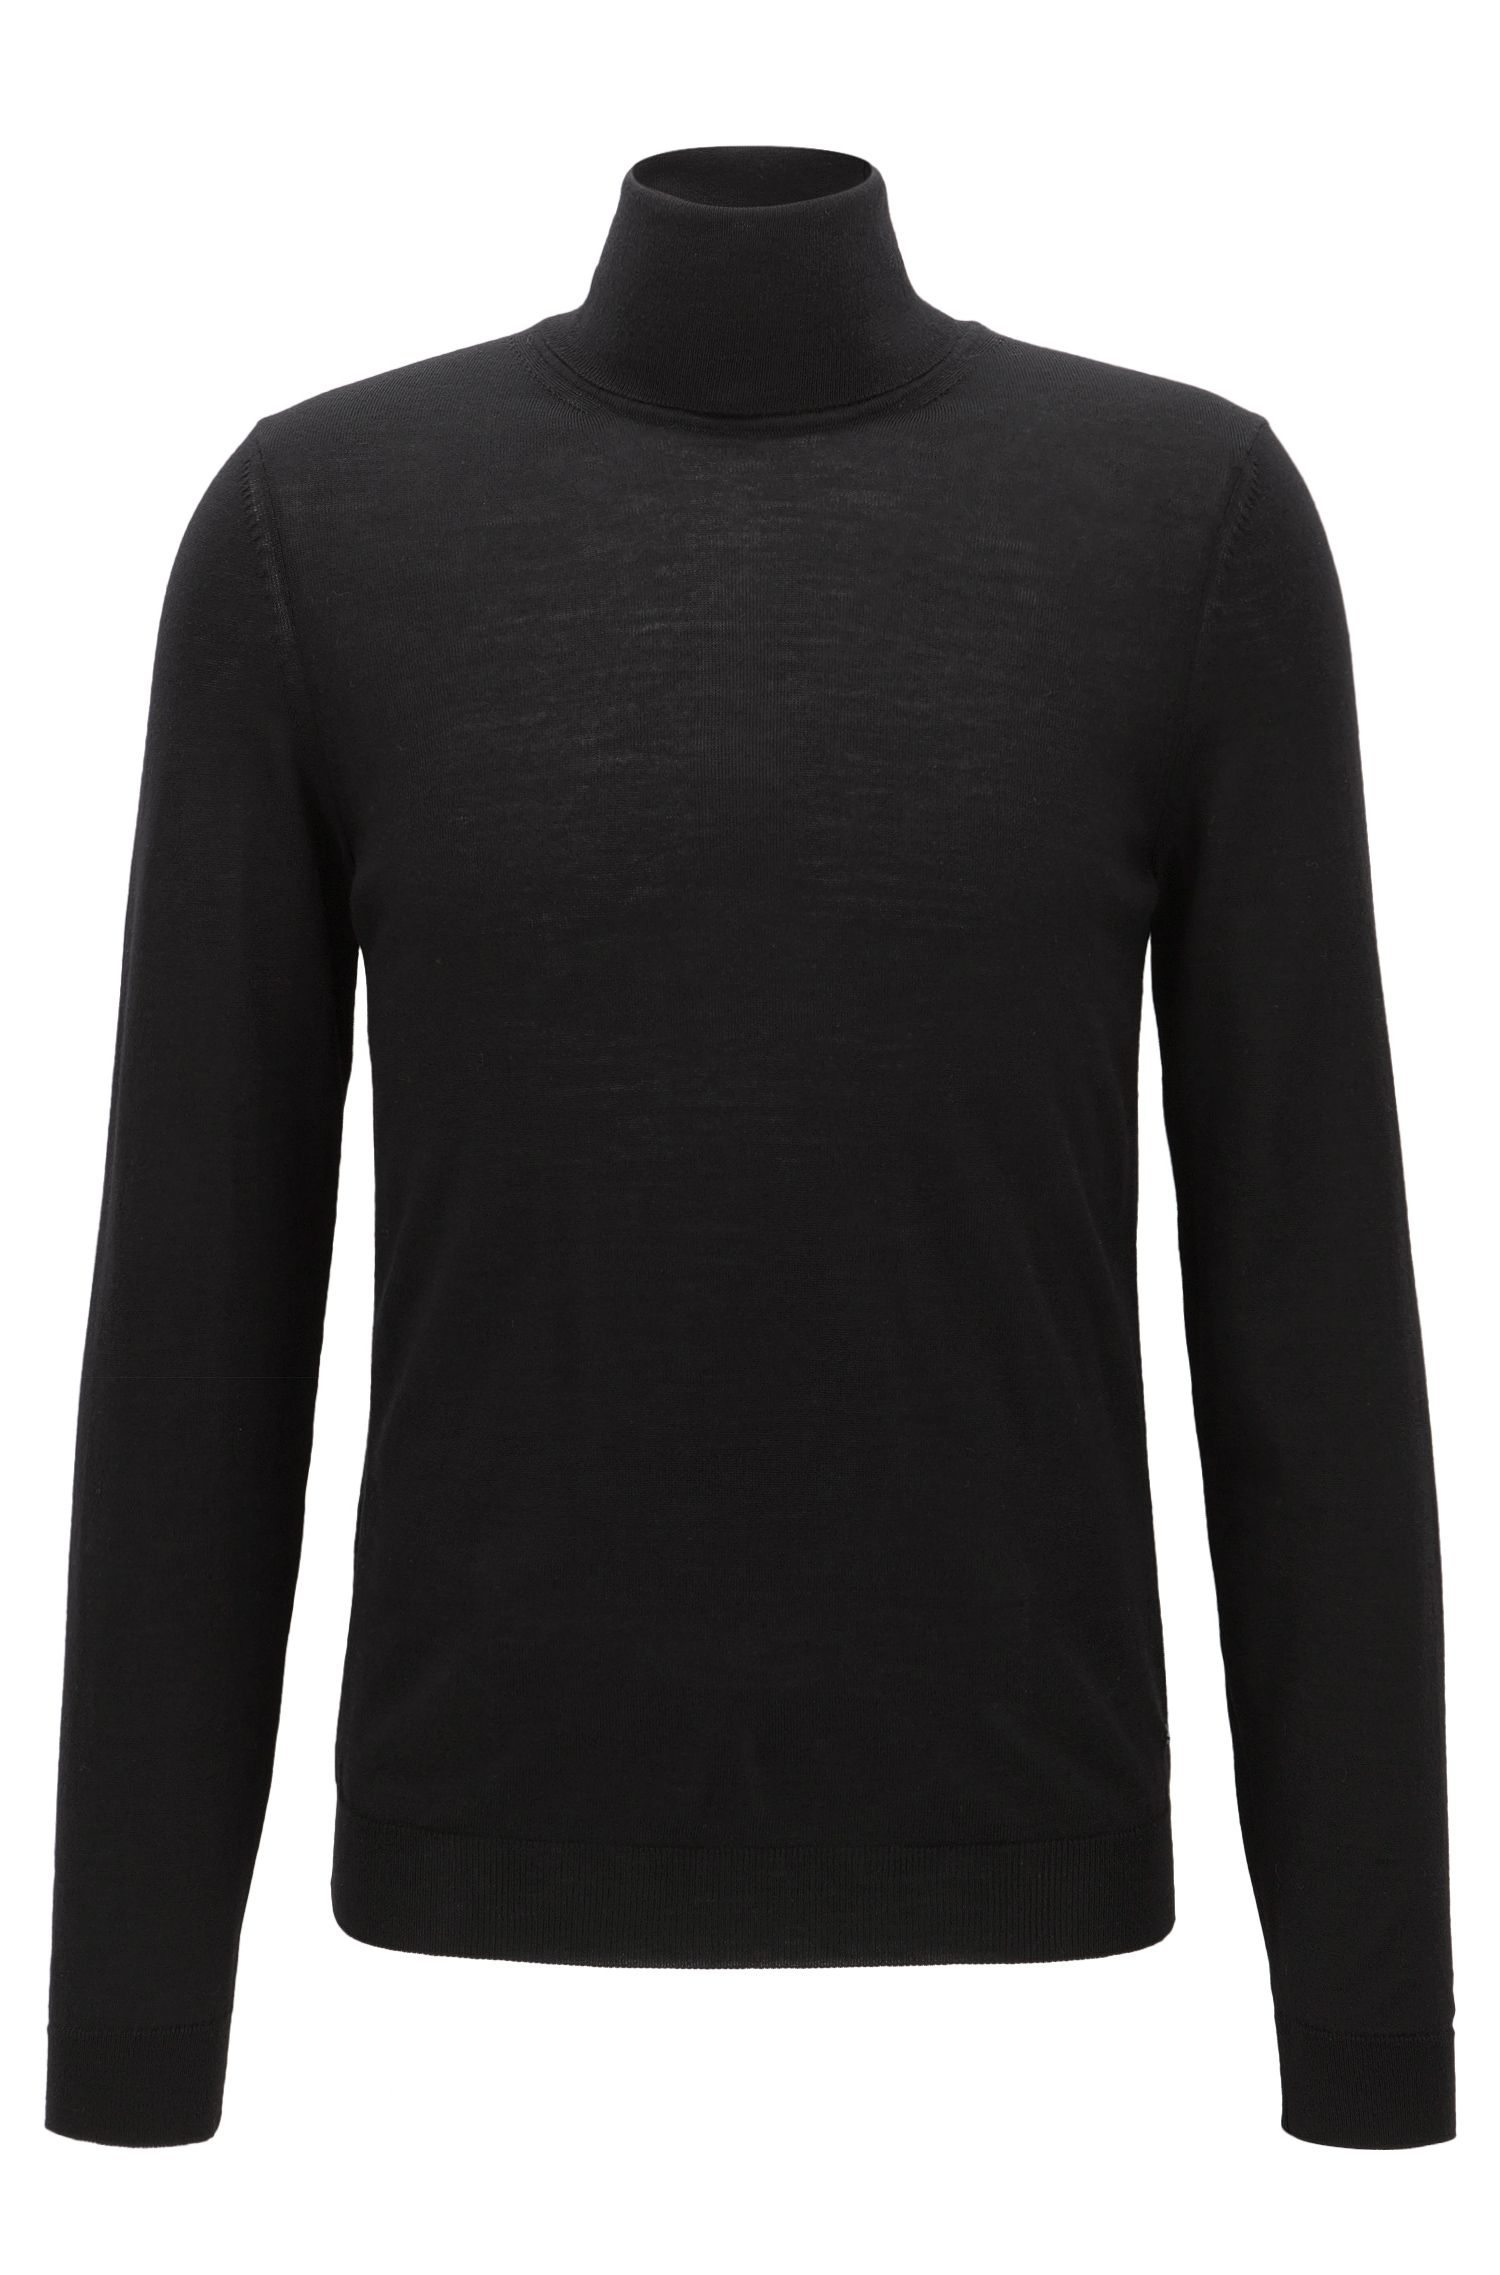 Maglione slim fit in lana con colletto a tartaruga